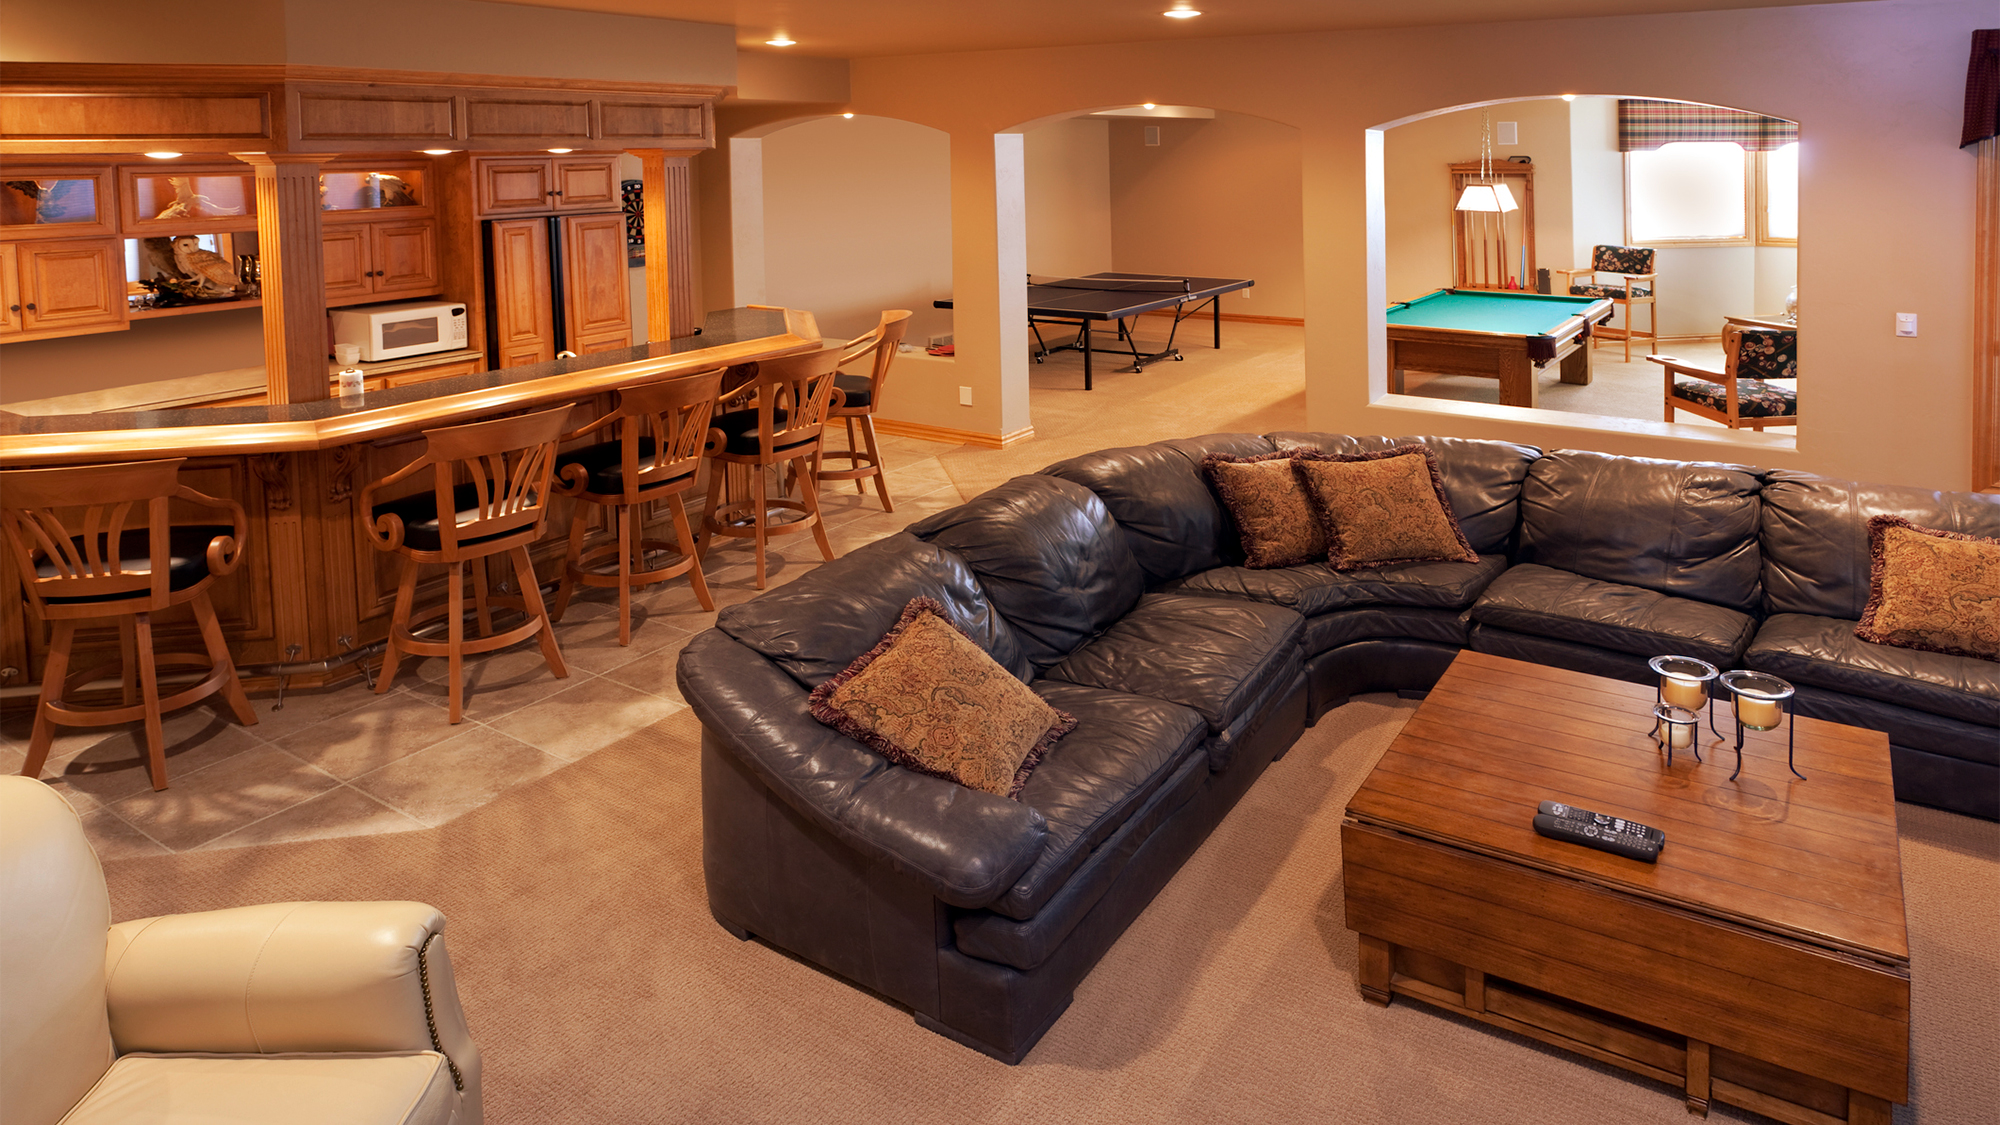 5 Tips to Improve Your Basement